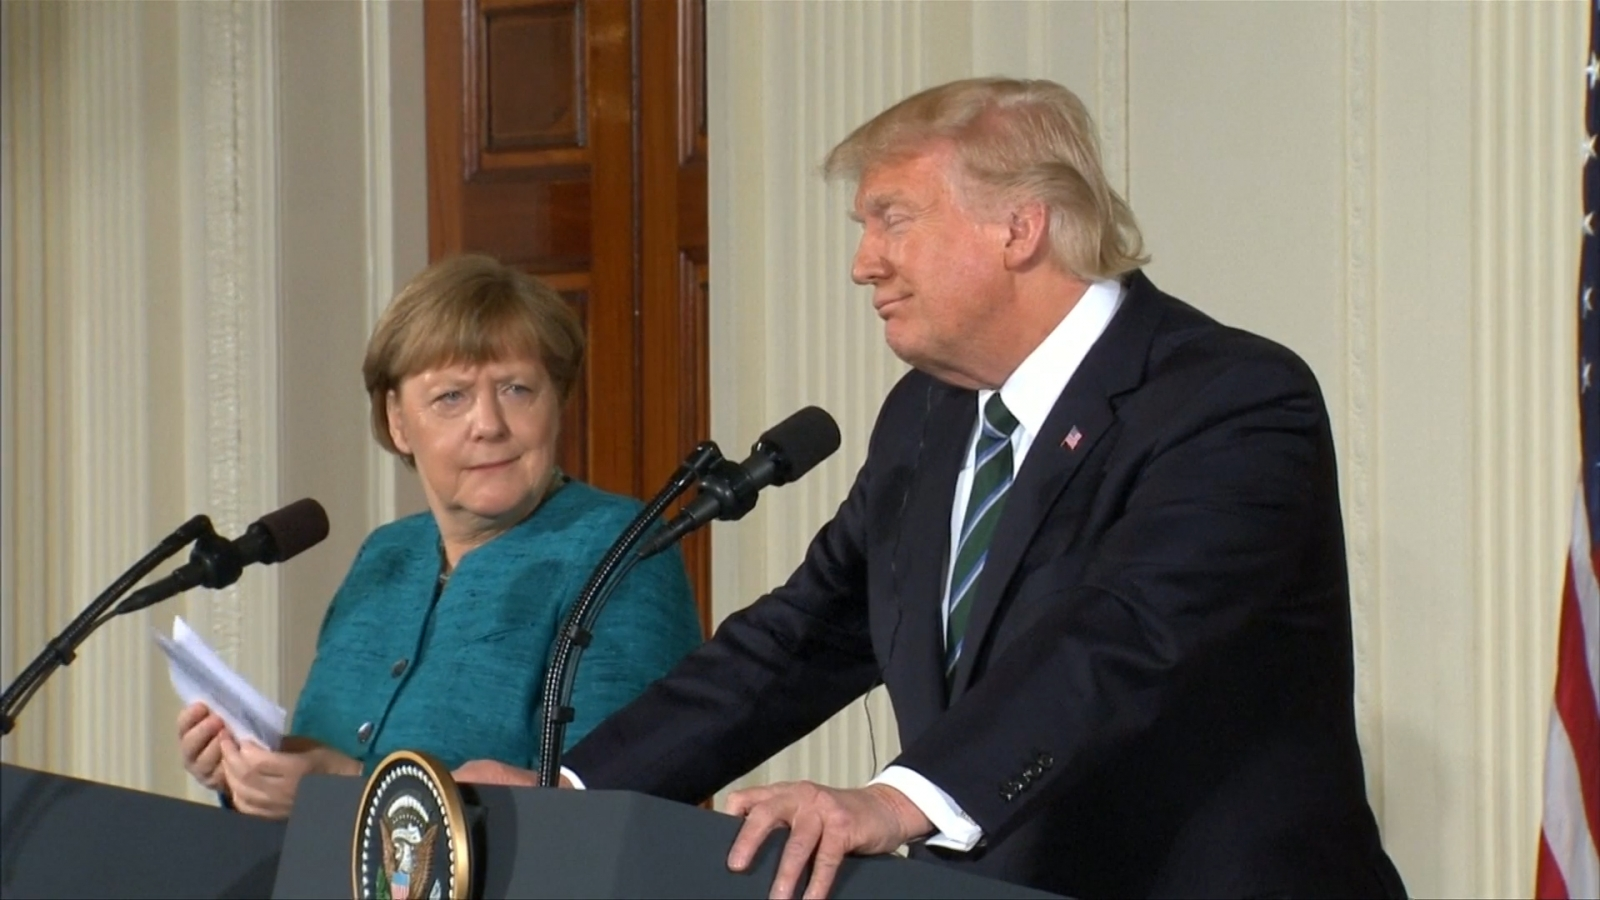 Trump jokes to Merkel about wire tapping